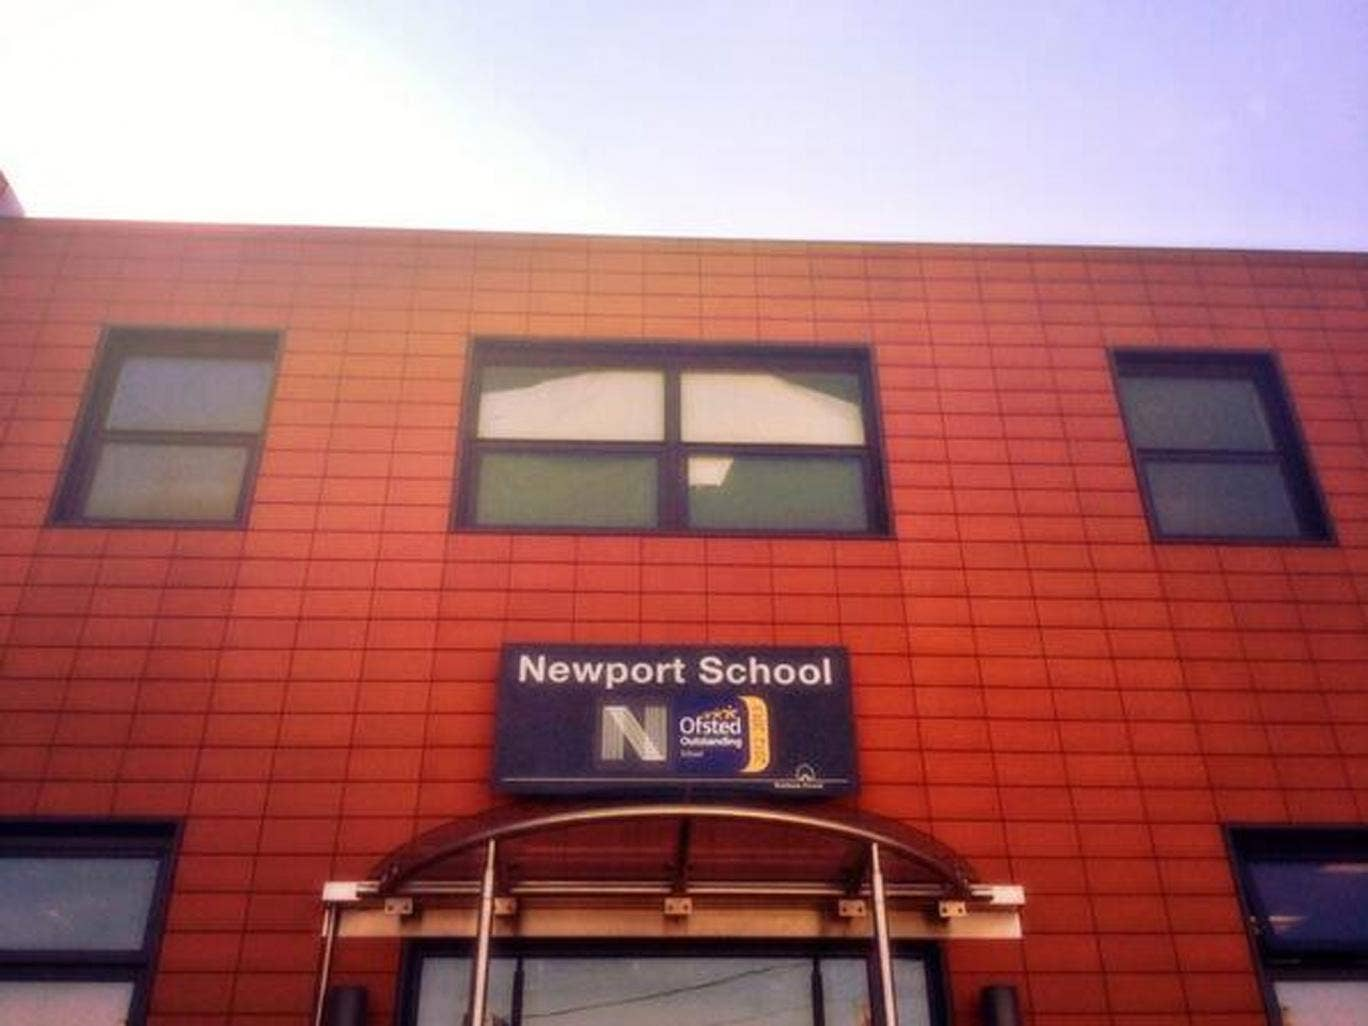 Newport Primary School, rated 'outstanding' by Ofsted, received complaints from parents after it said it could not accommodate fasting Muslim children at lunchtime